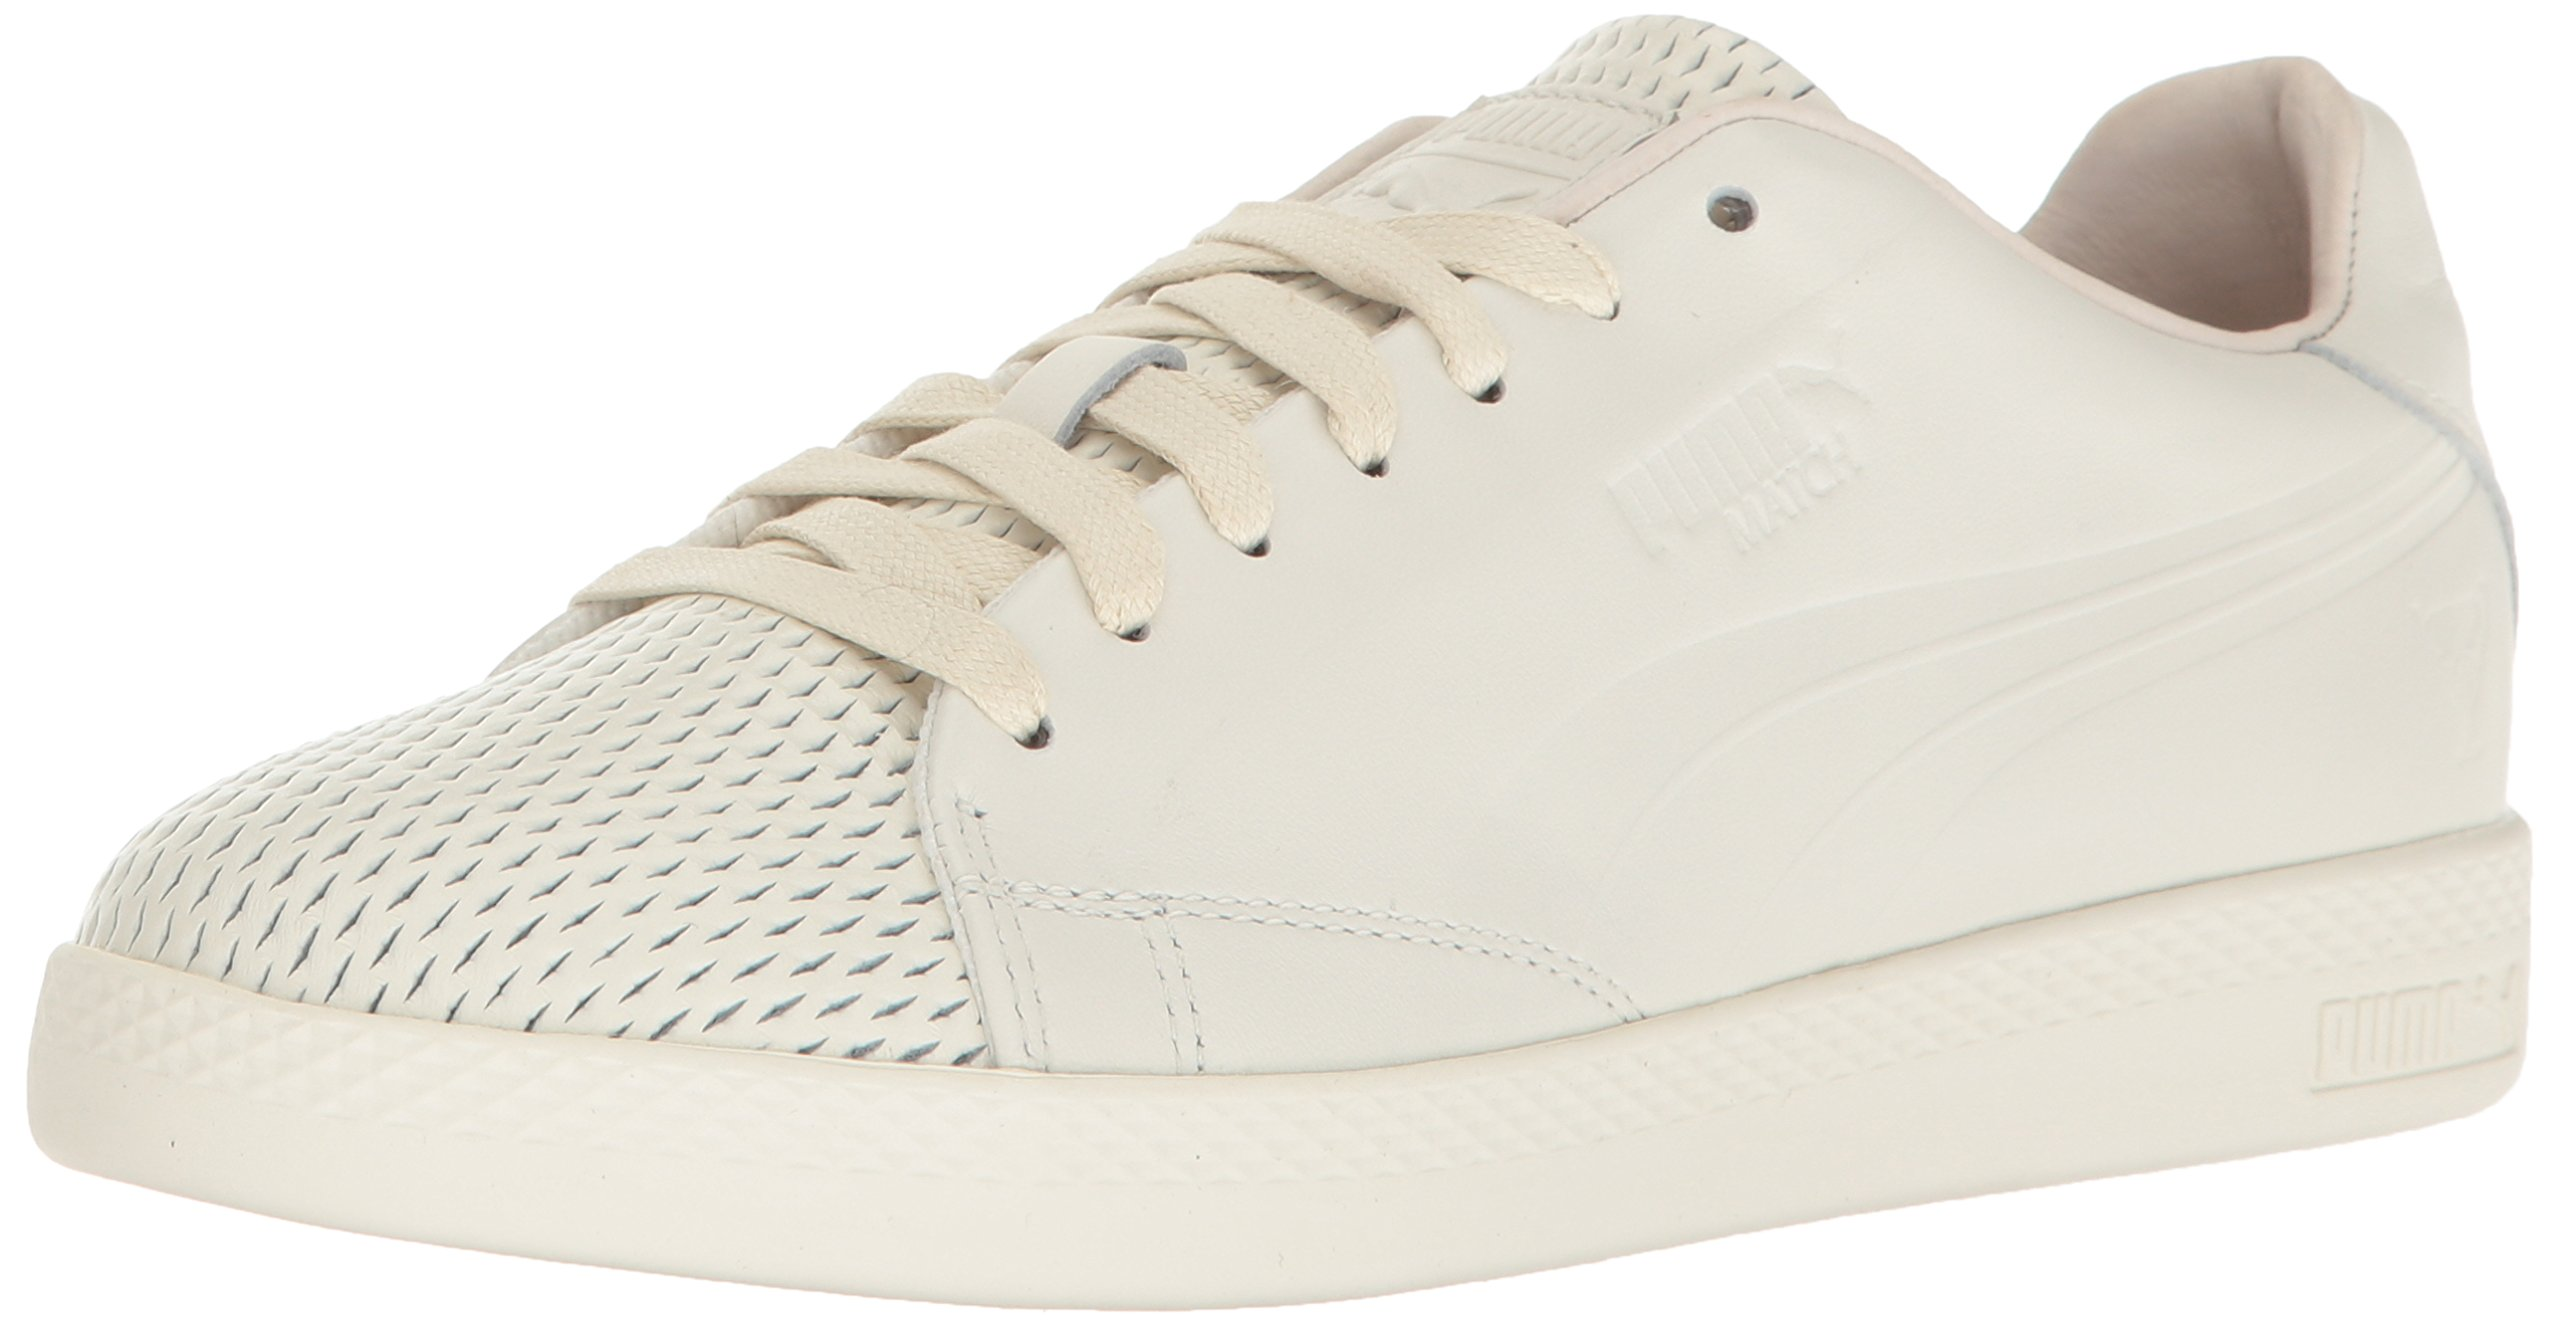 PUMA Women's Match LO Open FM WN's Field Hockey Shoe Whisper White-Whispe 11 M US by PUMA